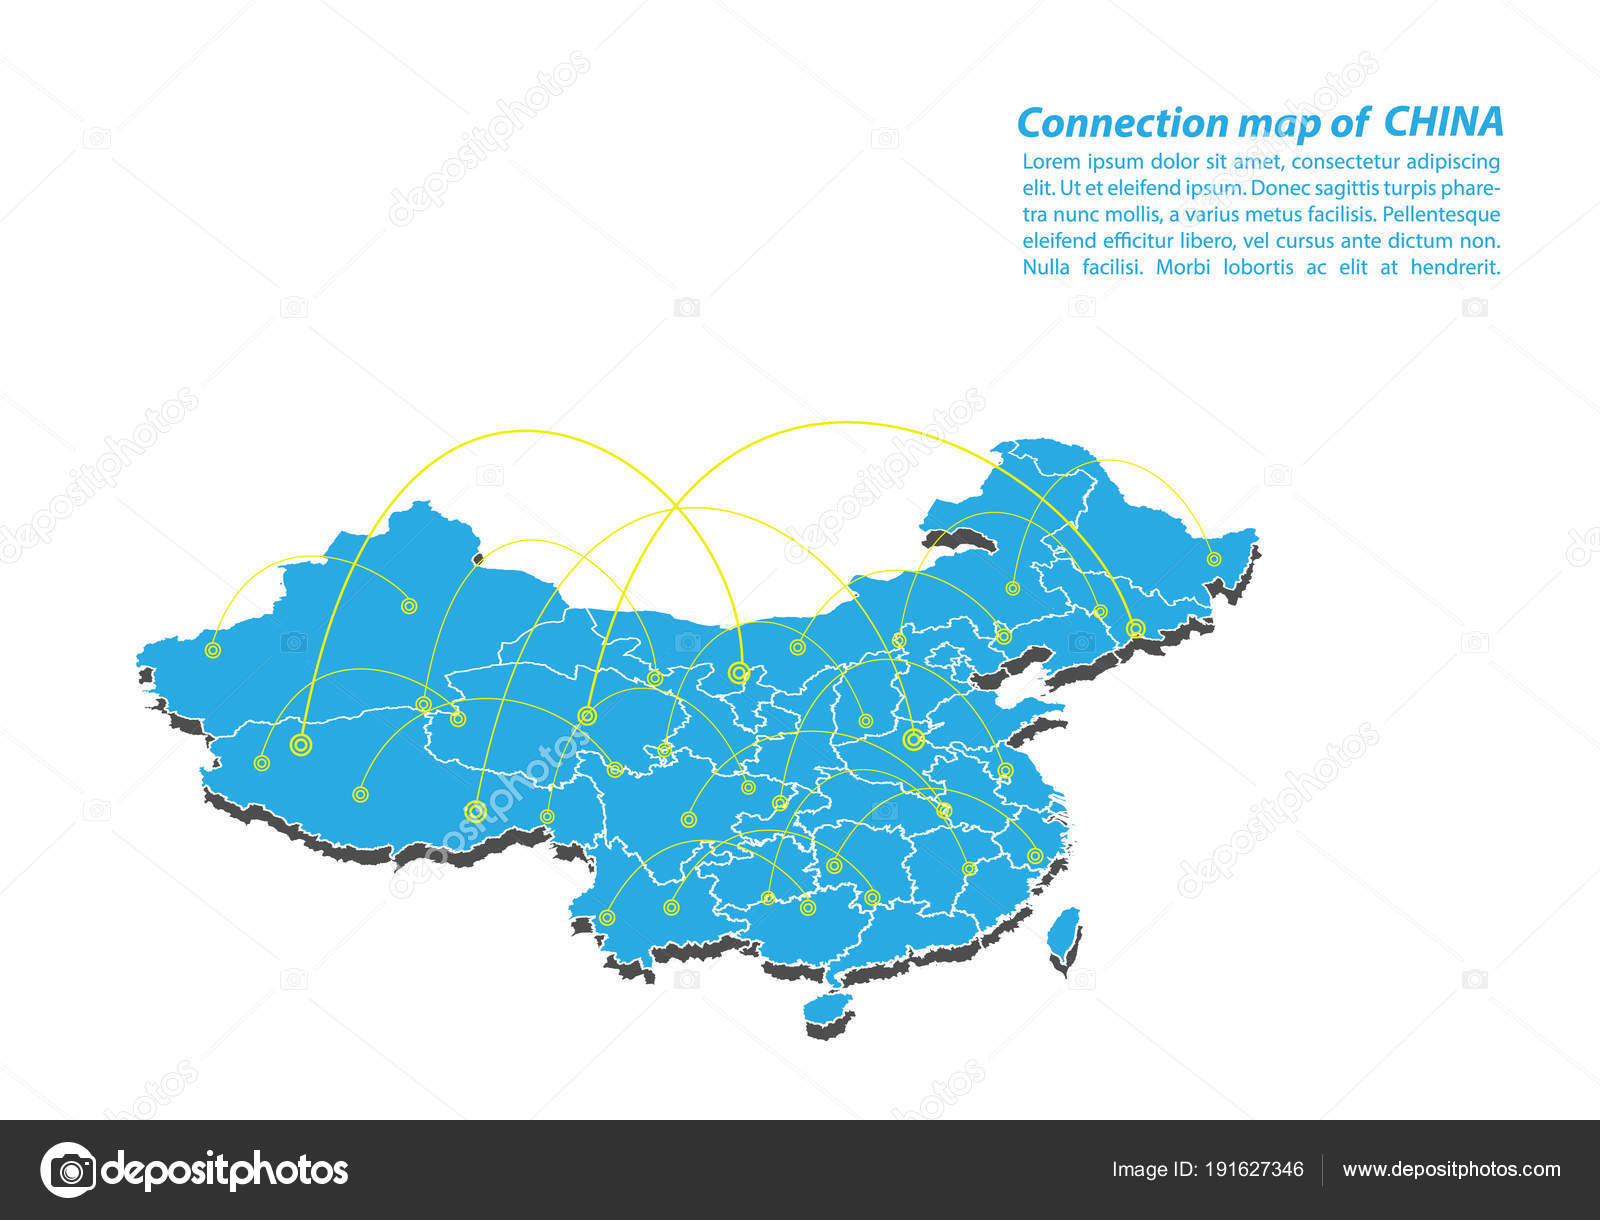 Modern China Map Connections Network Design Best Internet Concept